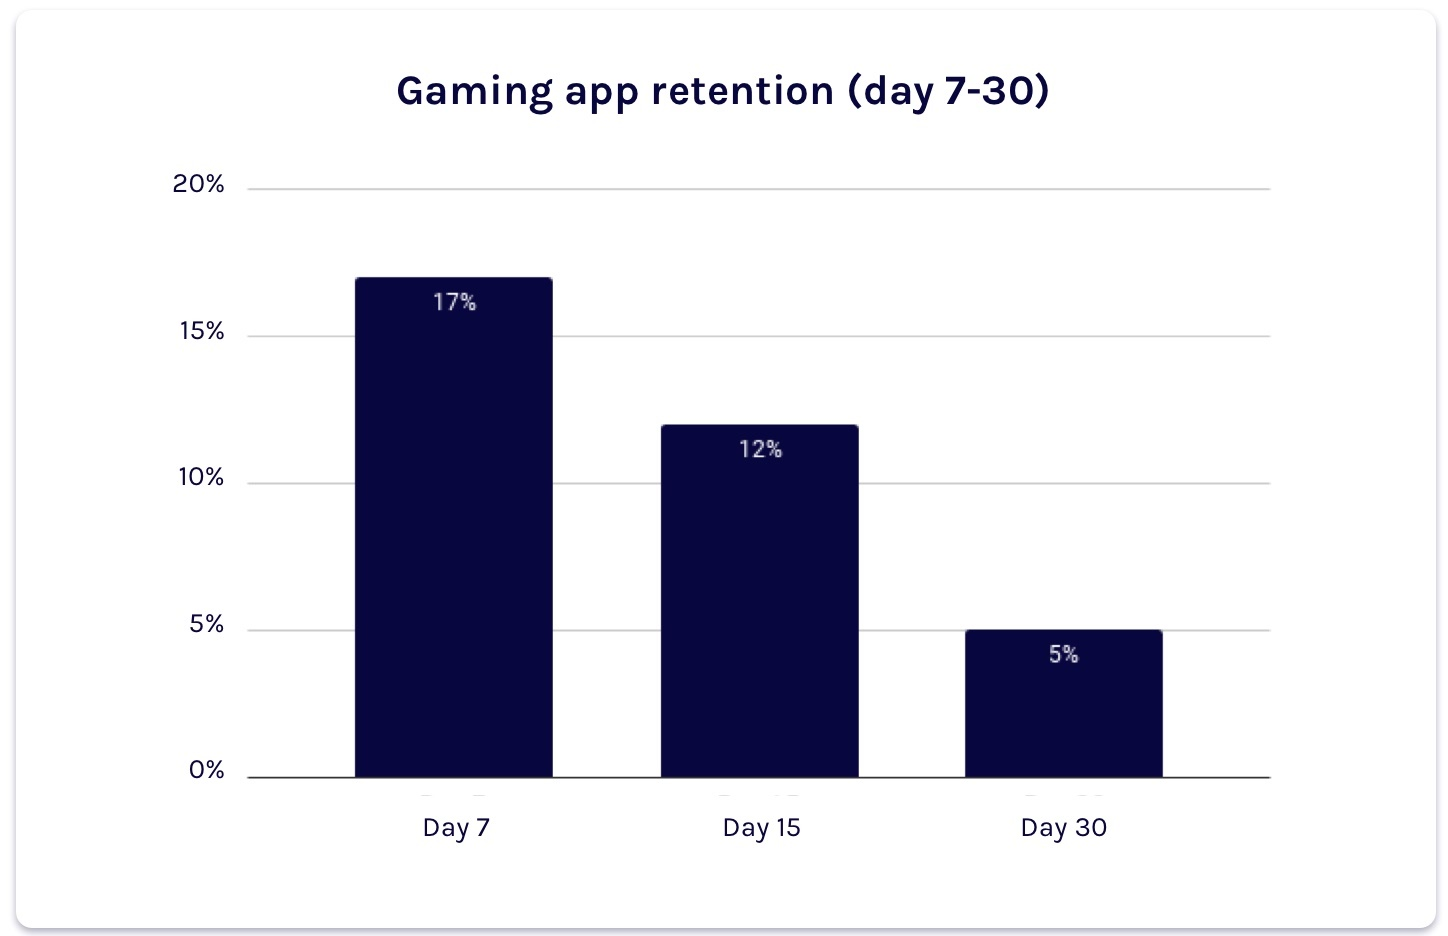 gaming app retention day 7, day 15 & day 30